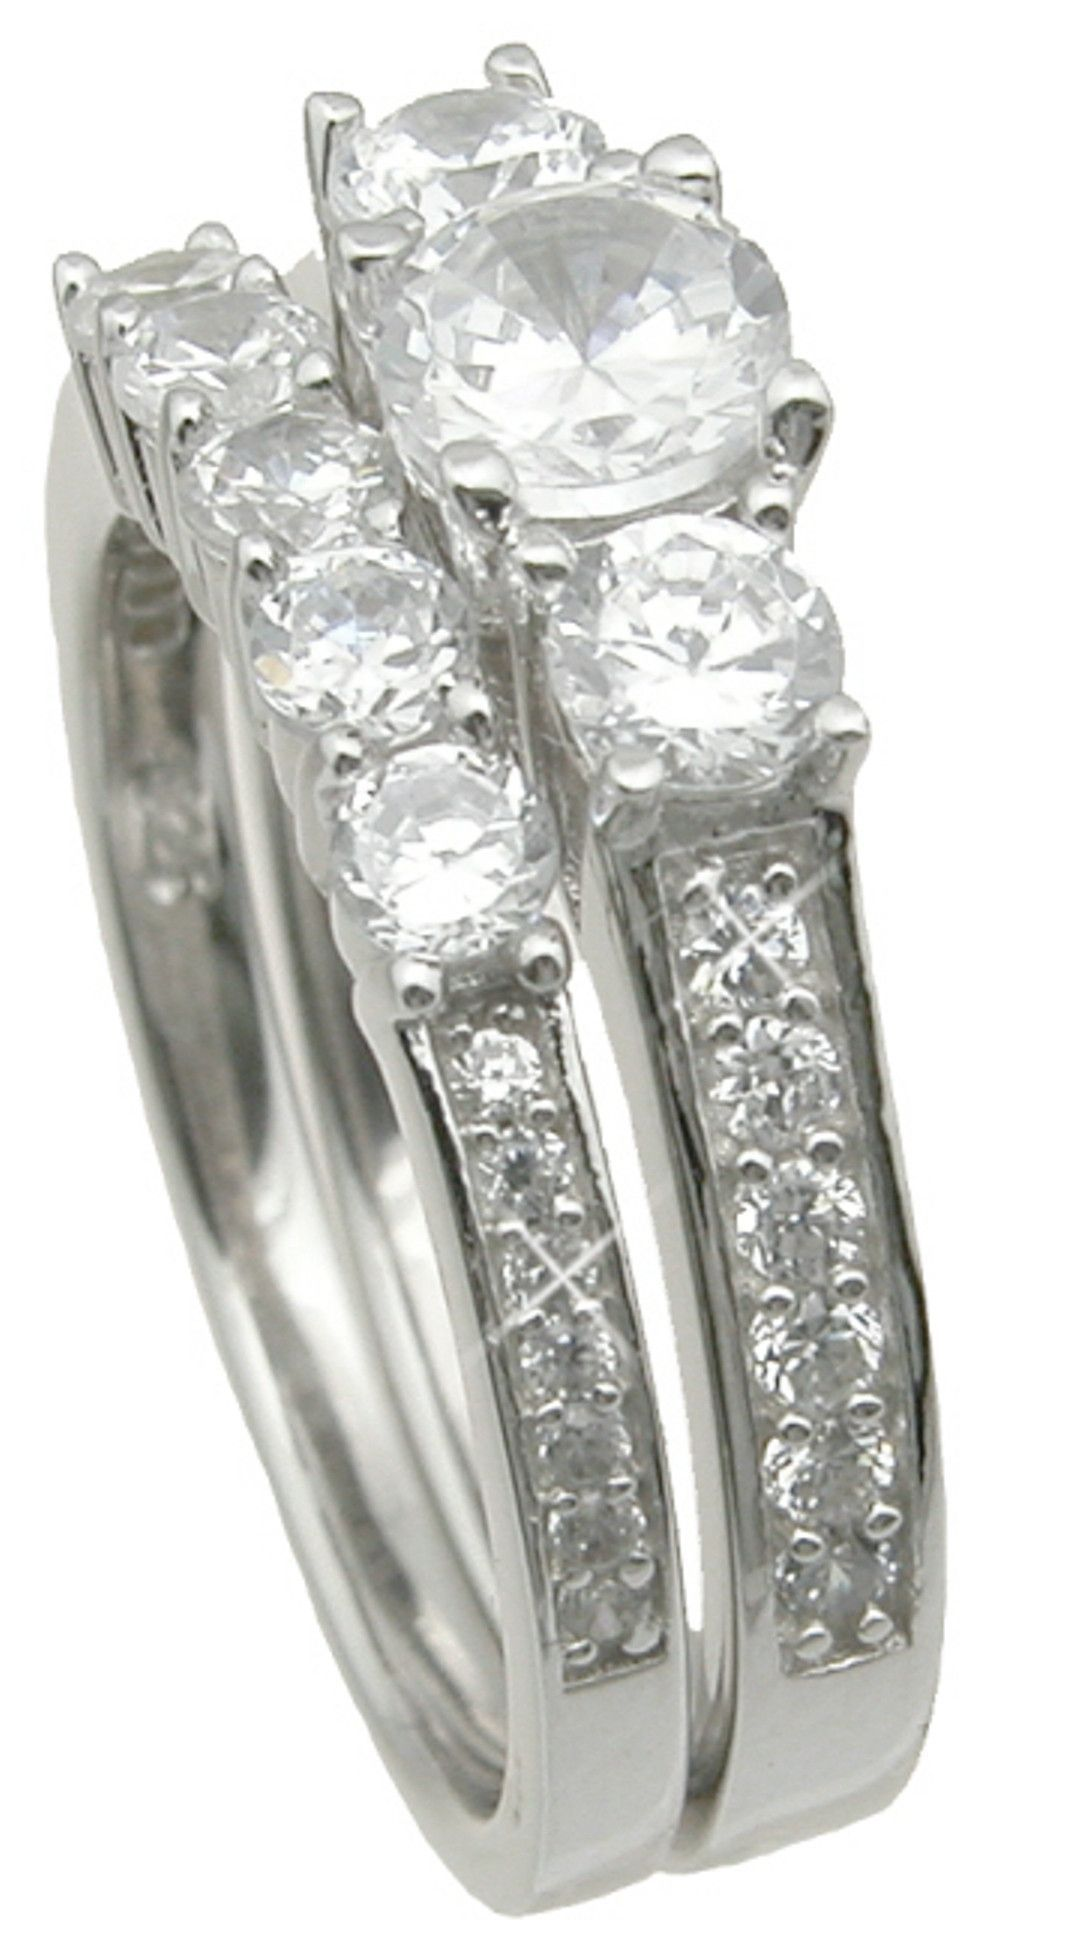 Believable CZ Wedding Ring Set Looks Real Not Cheap